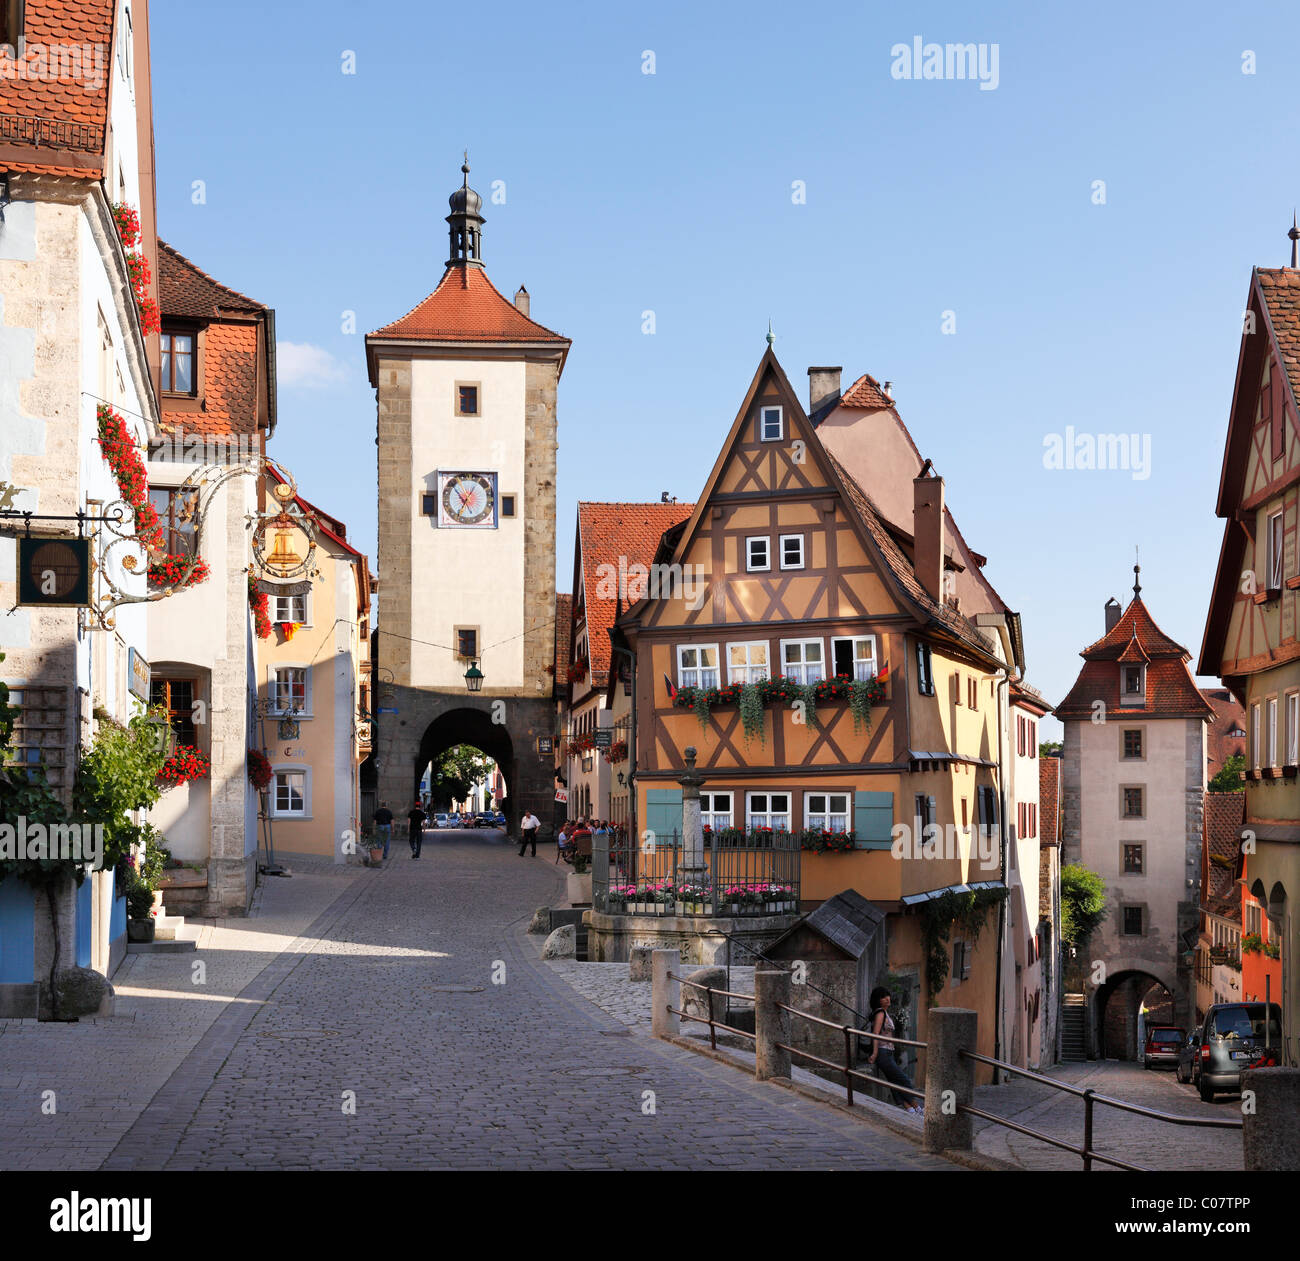 ploenlein stra enkreuzung und siebersturm turm rothenburg ob der tauber romantische stra e. Black Bedroom Furniture Sets. Home Design Ideas